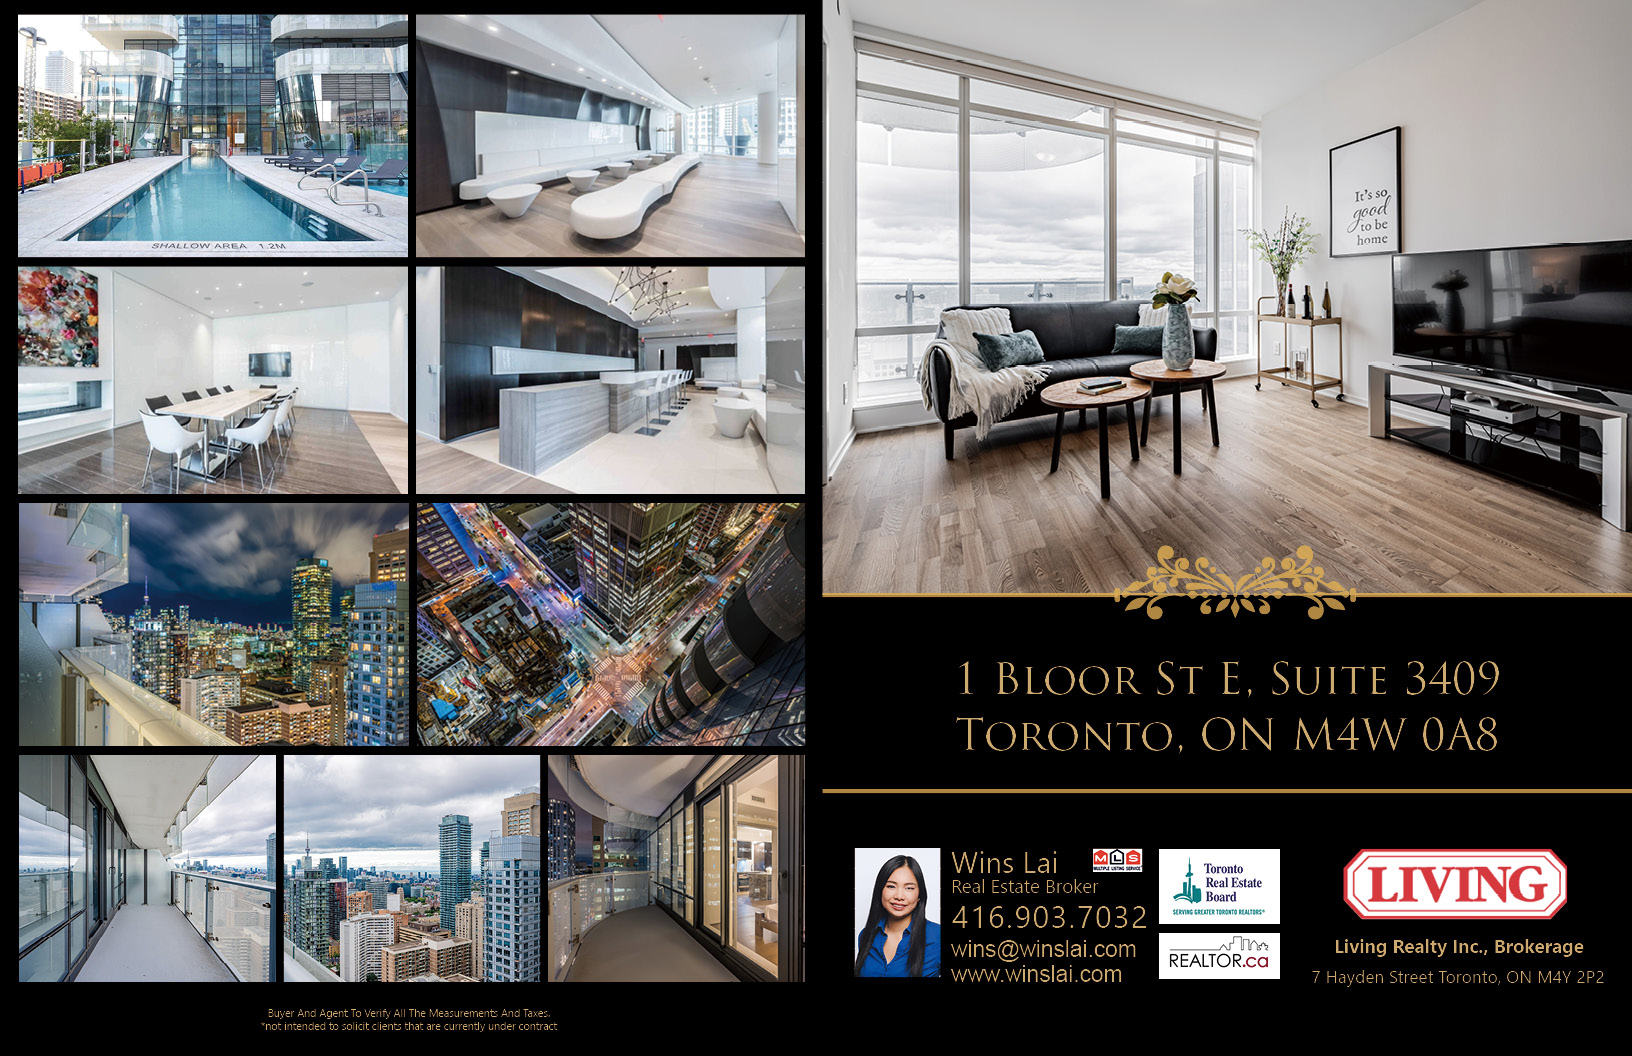 1 Bloor St E Unit 3409 brochure showing swimming pool, party room, buildings and more.